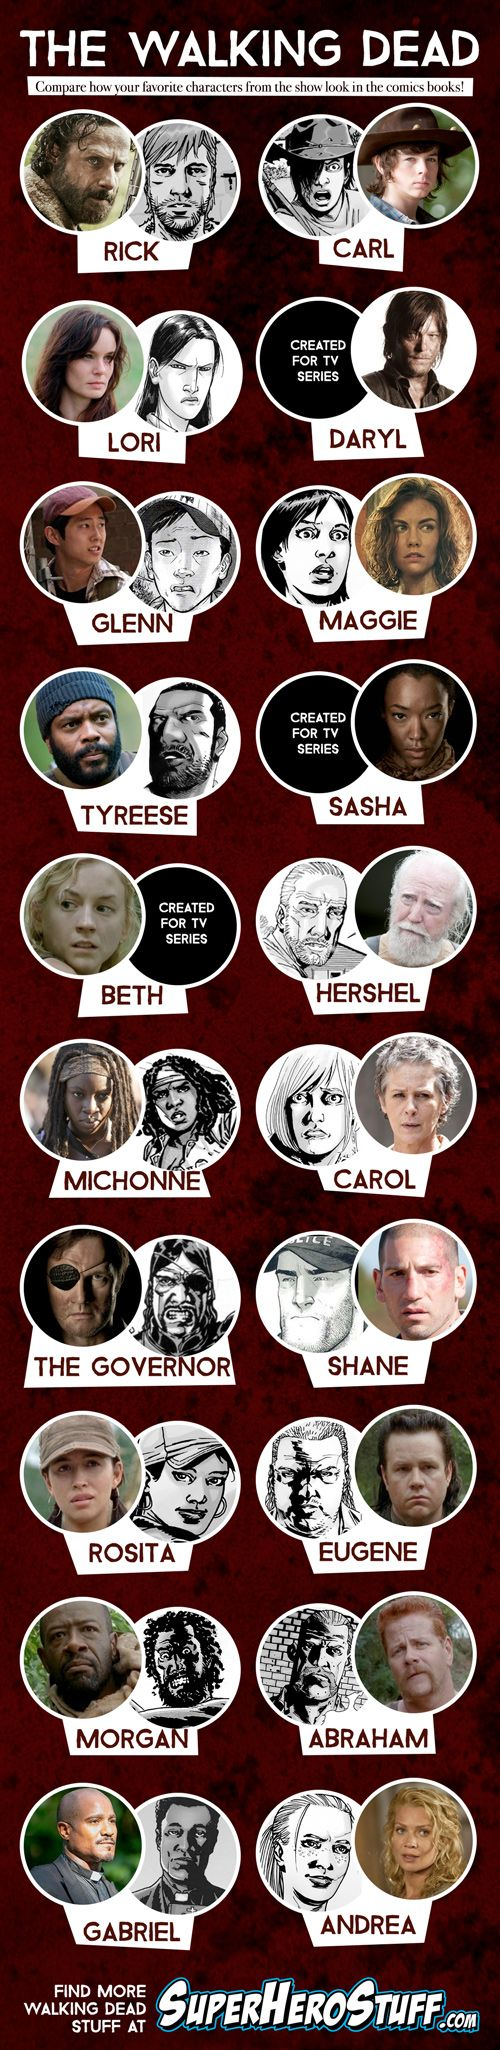 The Walking Dead Characters - TV vs The Comics - The Source by SuperHeroStuff